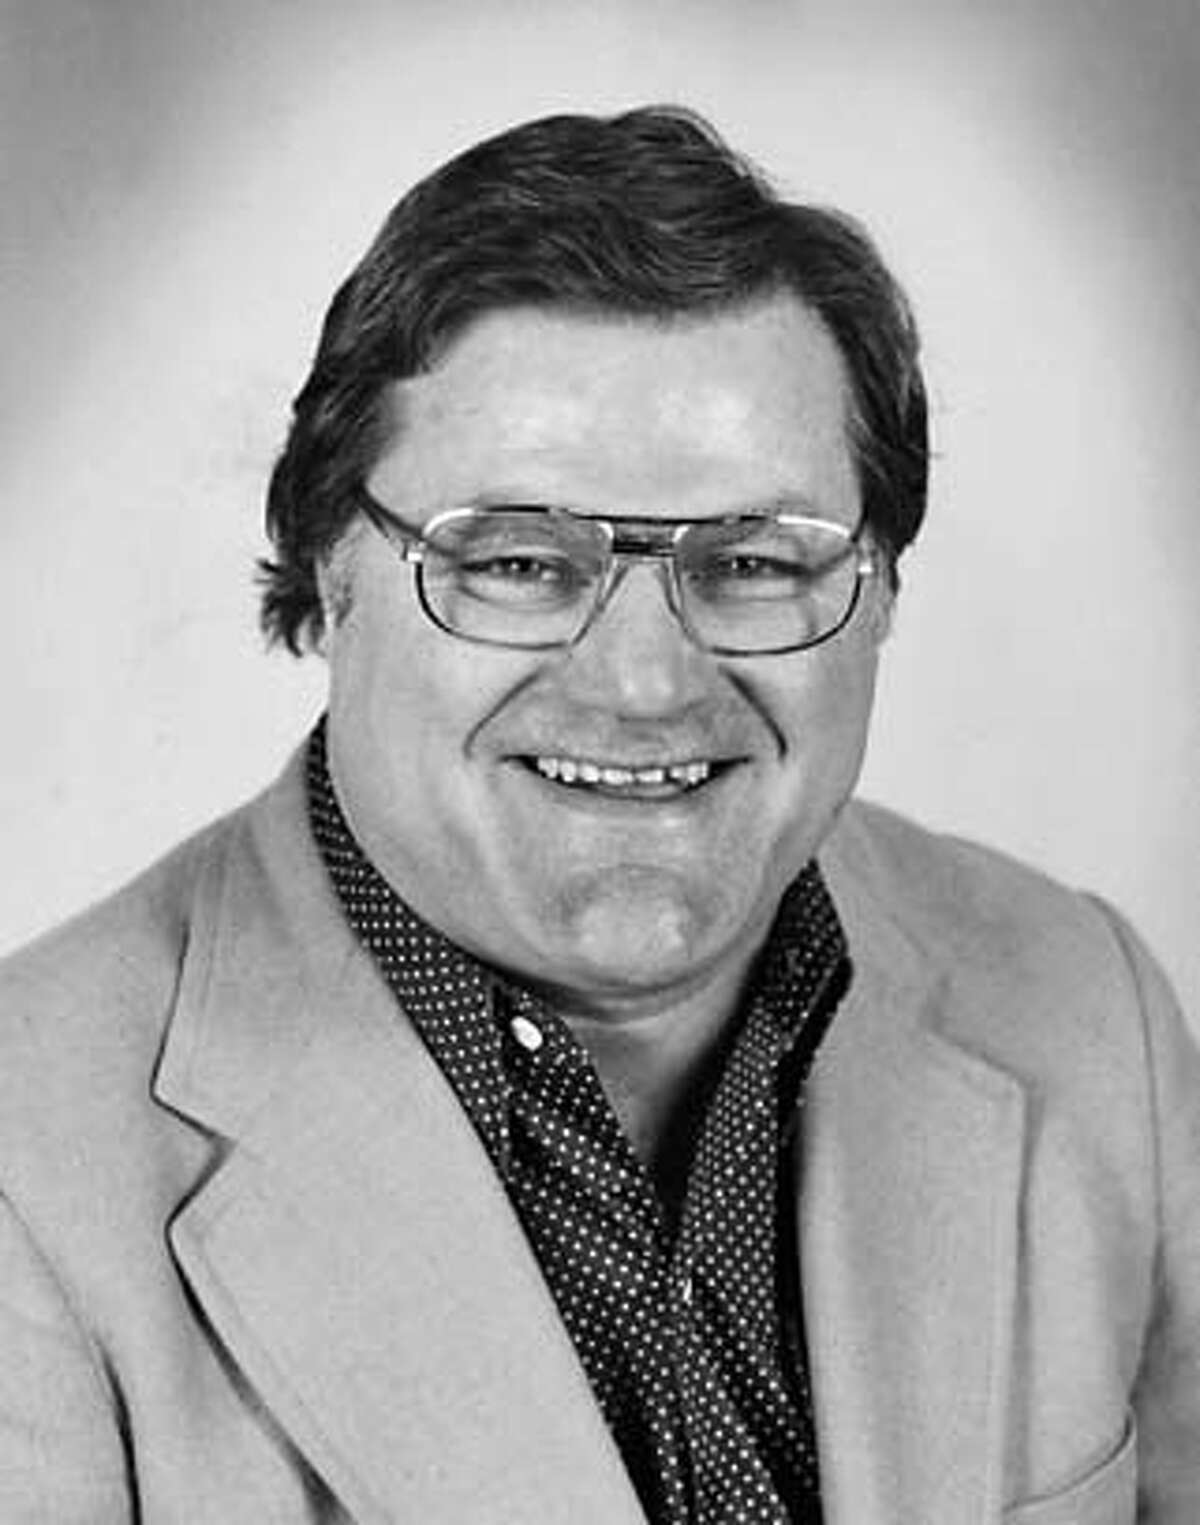 Monty Stickles, former 49ers tight end, Raiders and Cal football broadcaster and radio talk show host who died Sept. 06, 2006, aged 68.